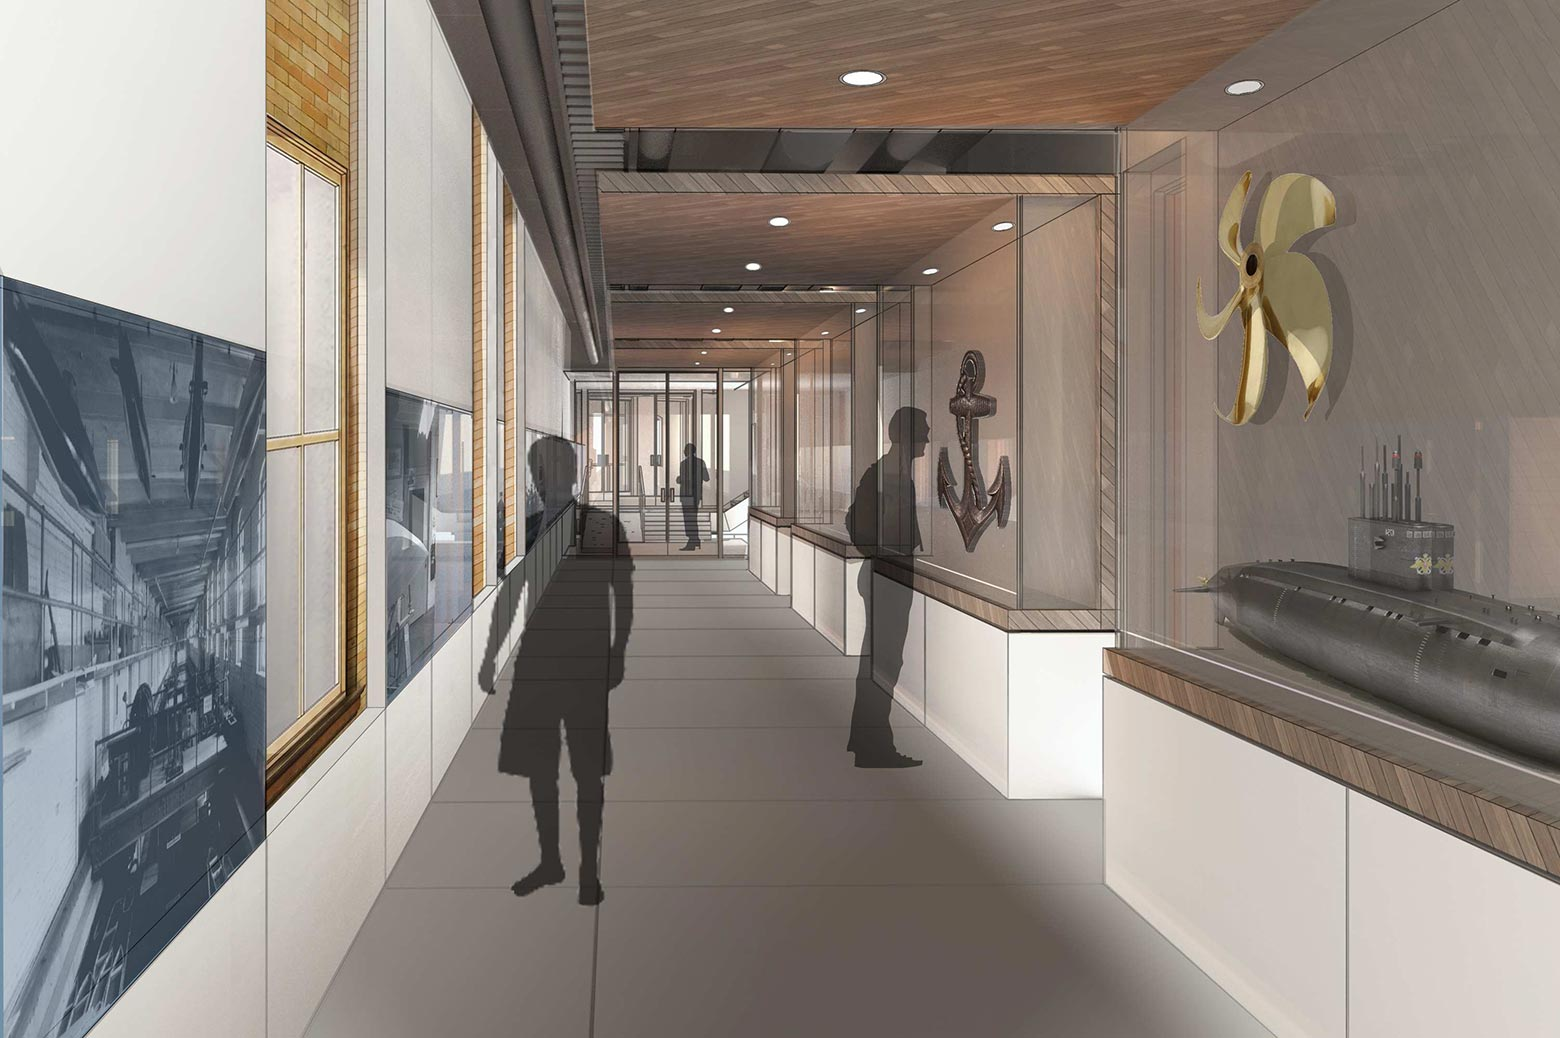 An artist's rendering of the new exhibit space in the Friedman Marine Hydrodynamics Lab.